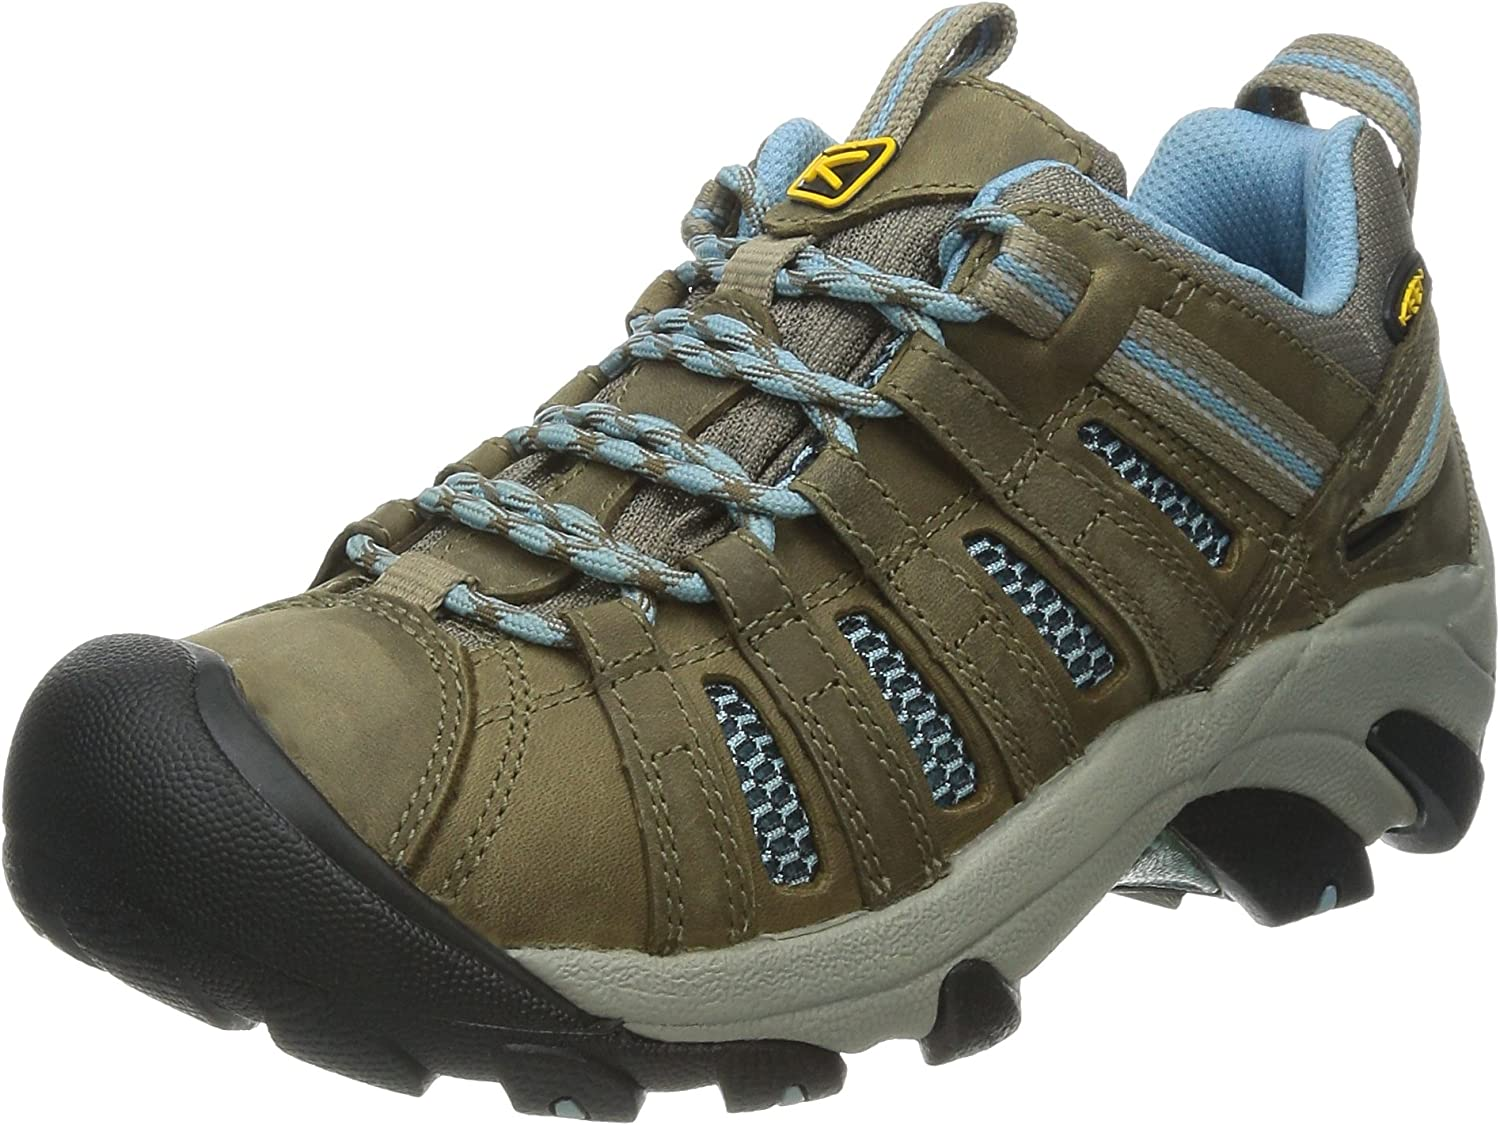 KEEN Womens Trail Trekking Shoes Grey